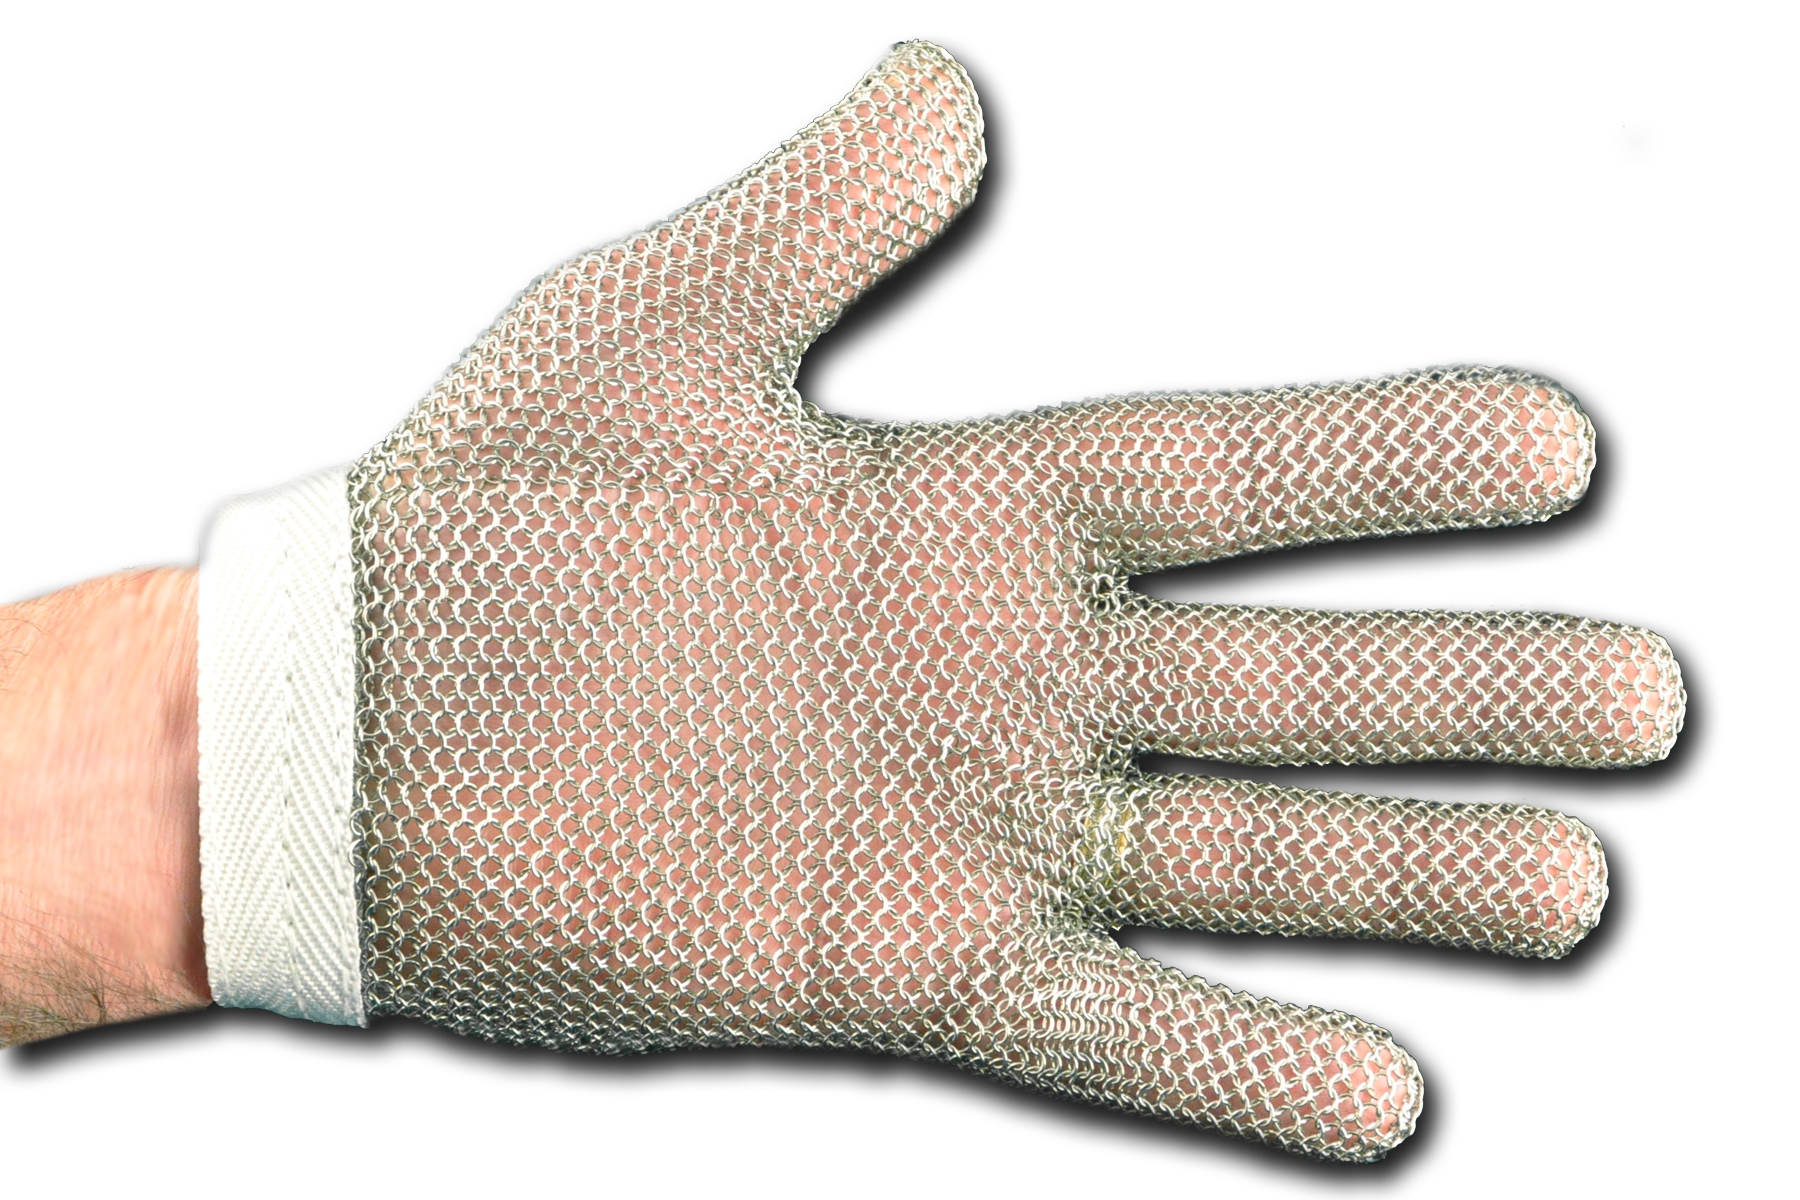 Dexter Russell 82073 protective gloves